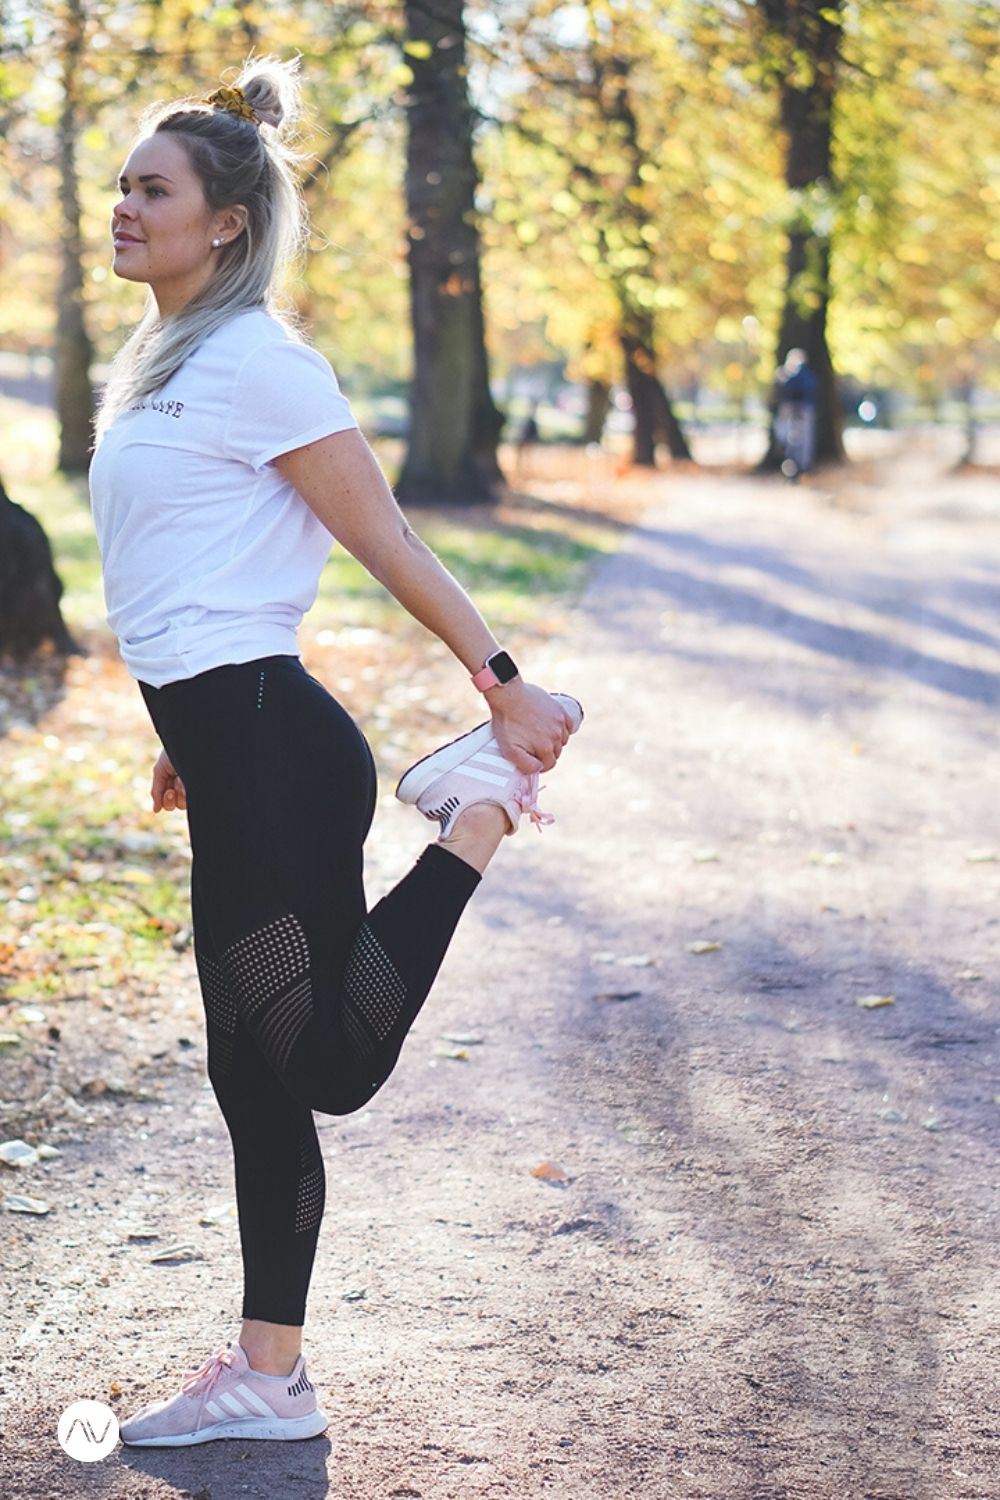 Scegli il tuo outfit sportivo su #armadioverde! #sportychicstyle #fitness #ootd #mood #inspiration #...